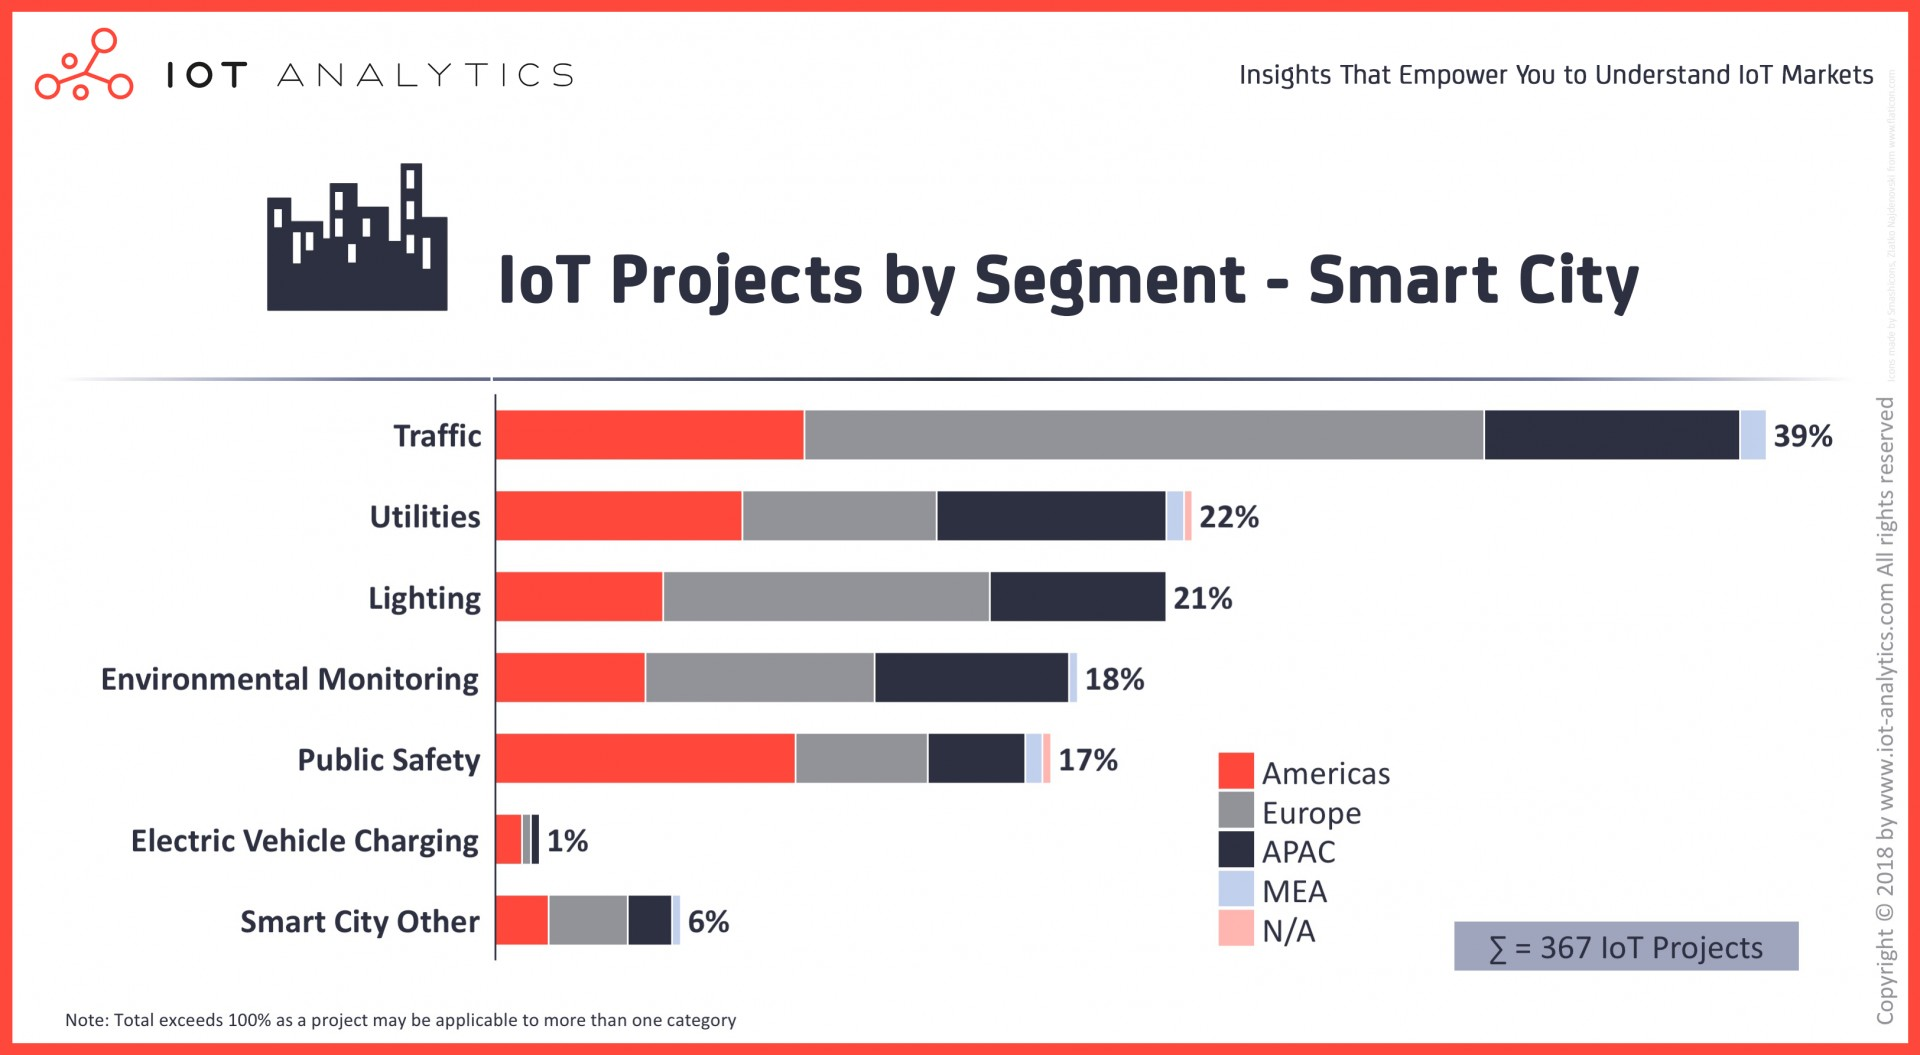 015 Internet Of Things Research Paper Pdf Iot Projects By Segment Smart City Dreaded 2018 1920